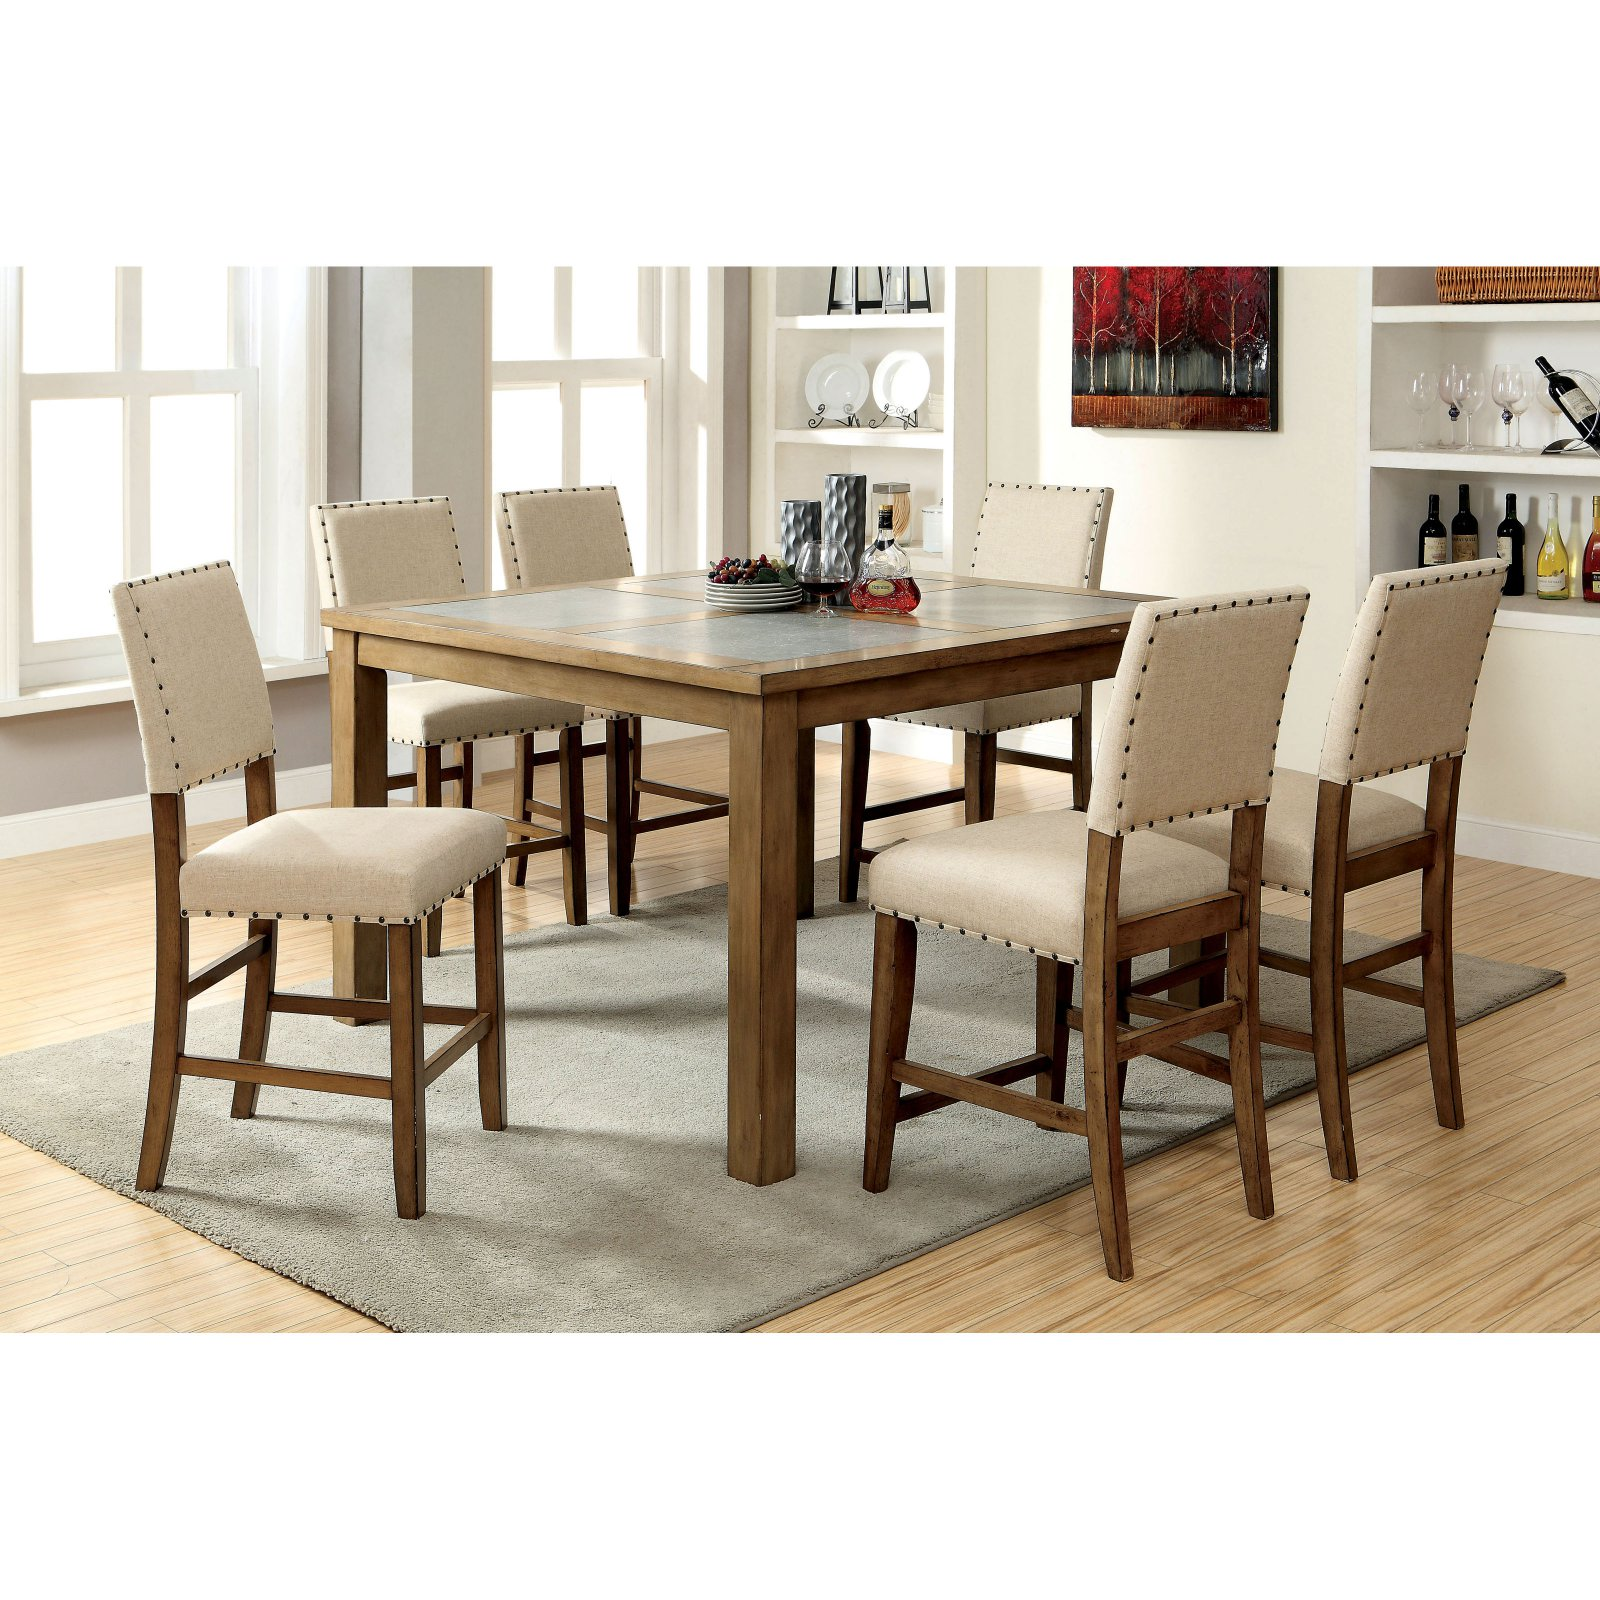 Furniture of America Kincade Counter Height Dining Table